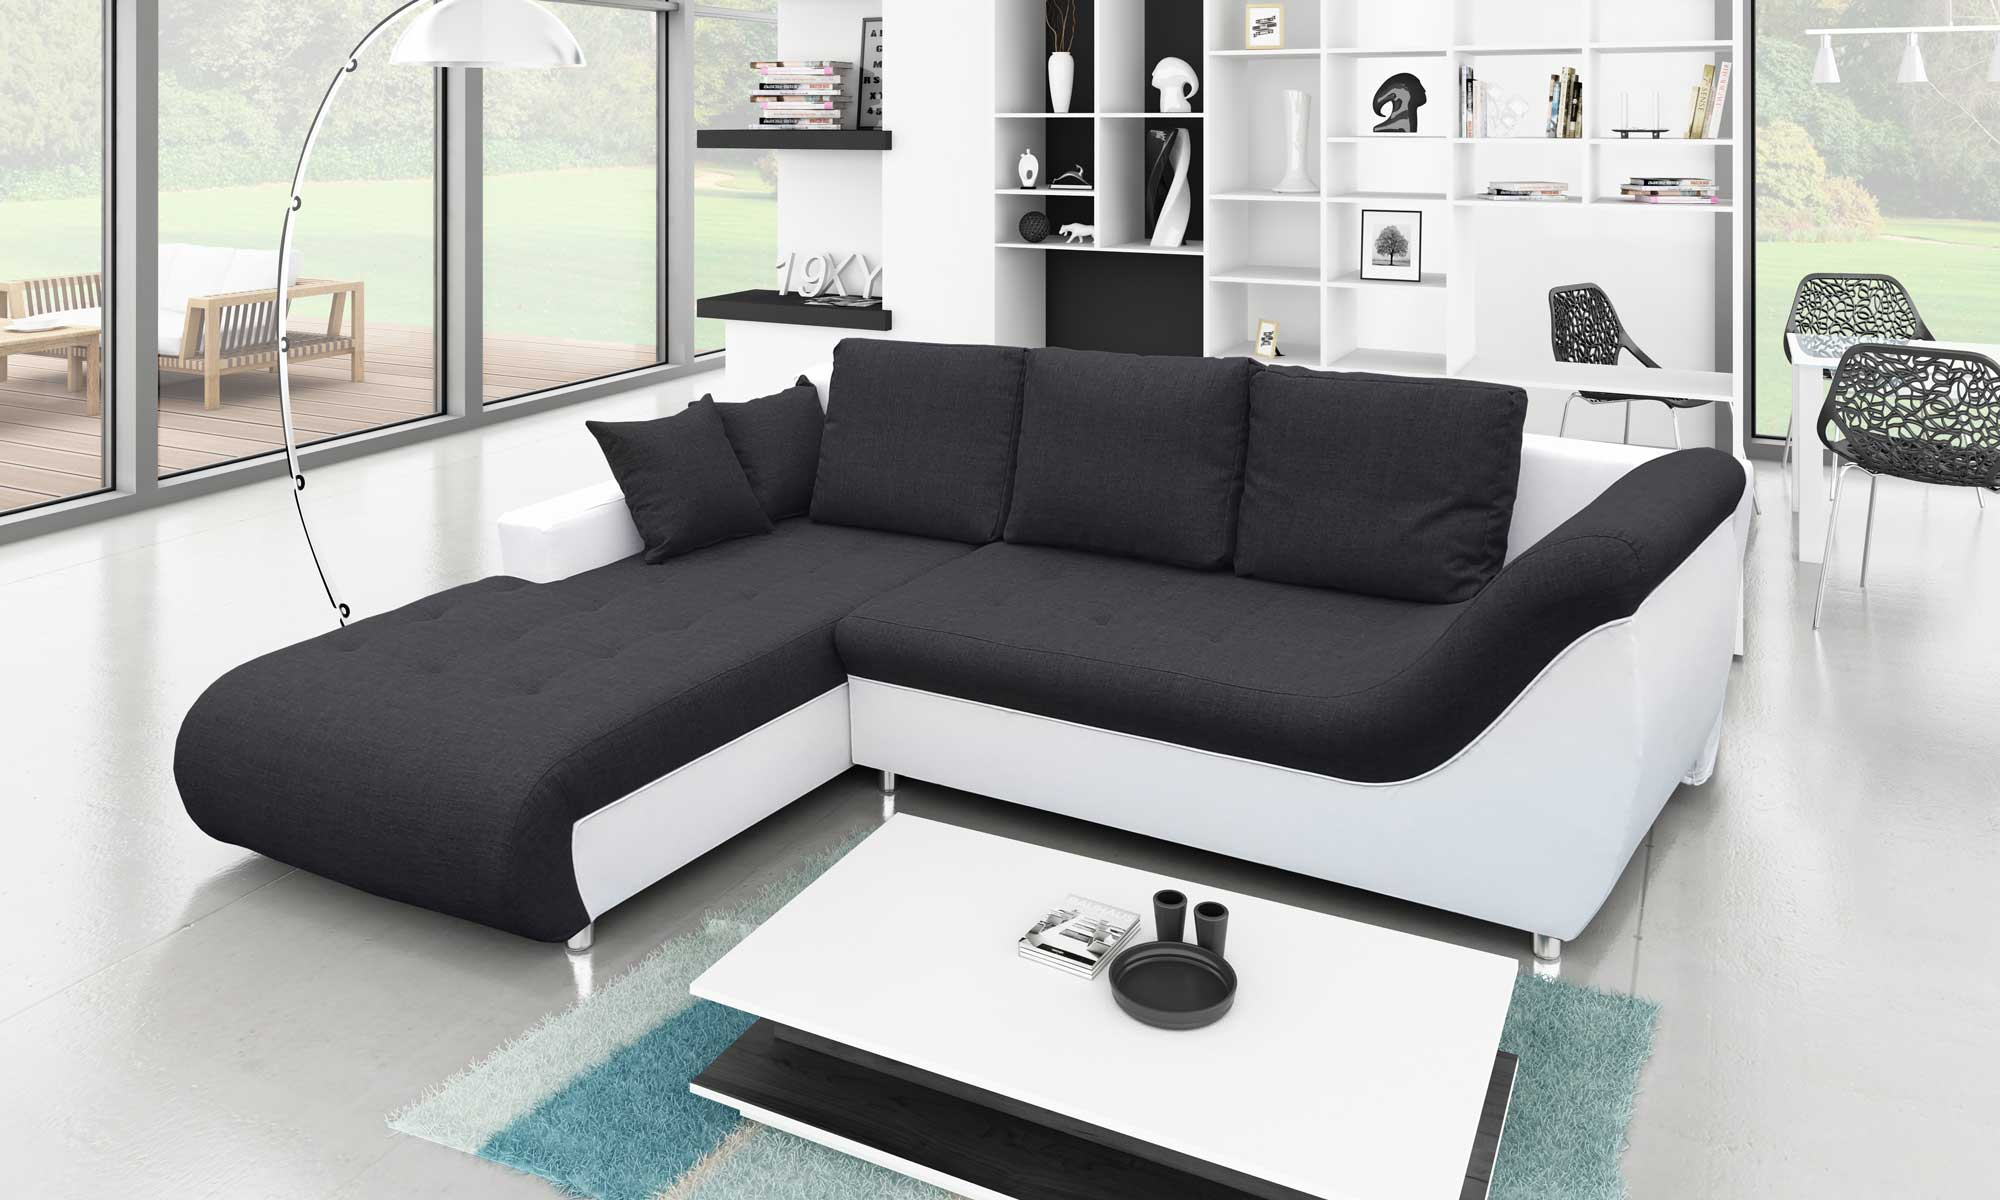 Convertible Four seater Sofa Bed Black and White with Storage Right L